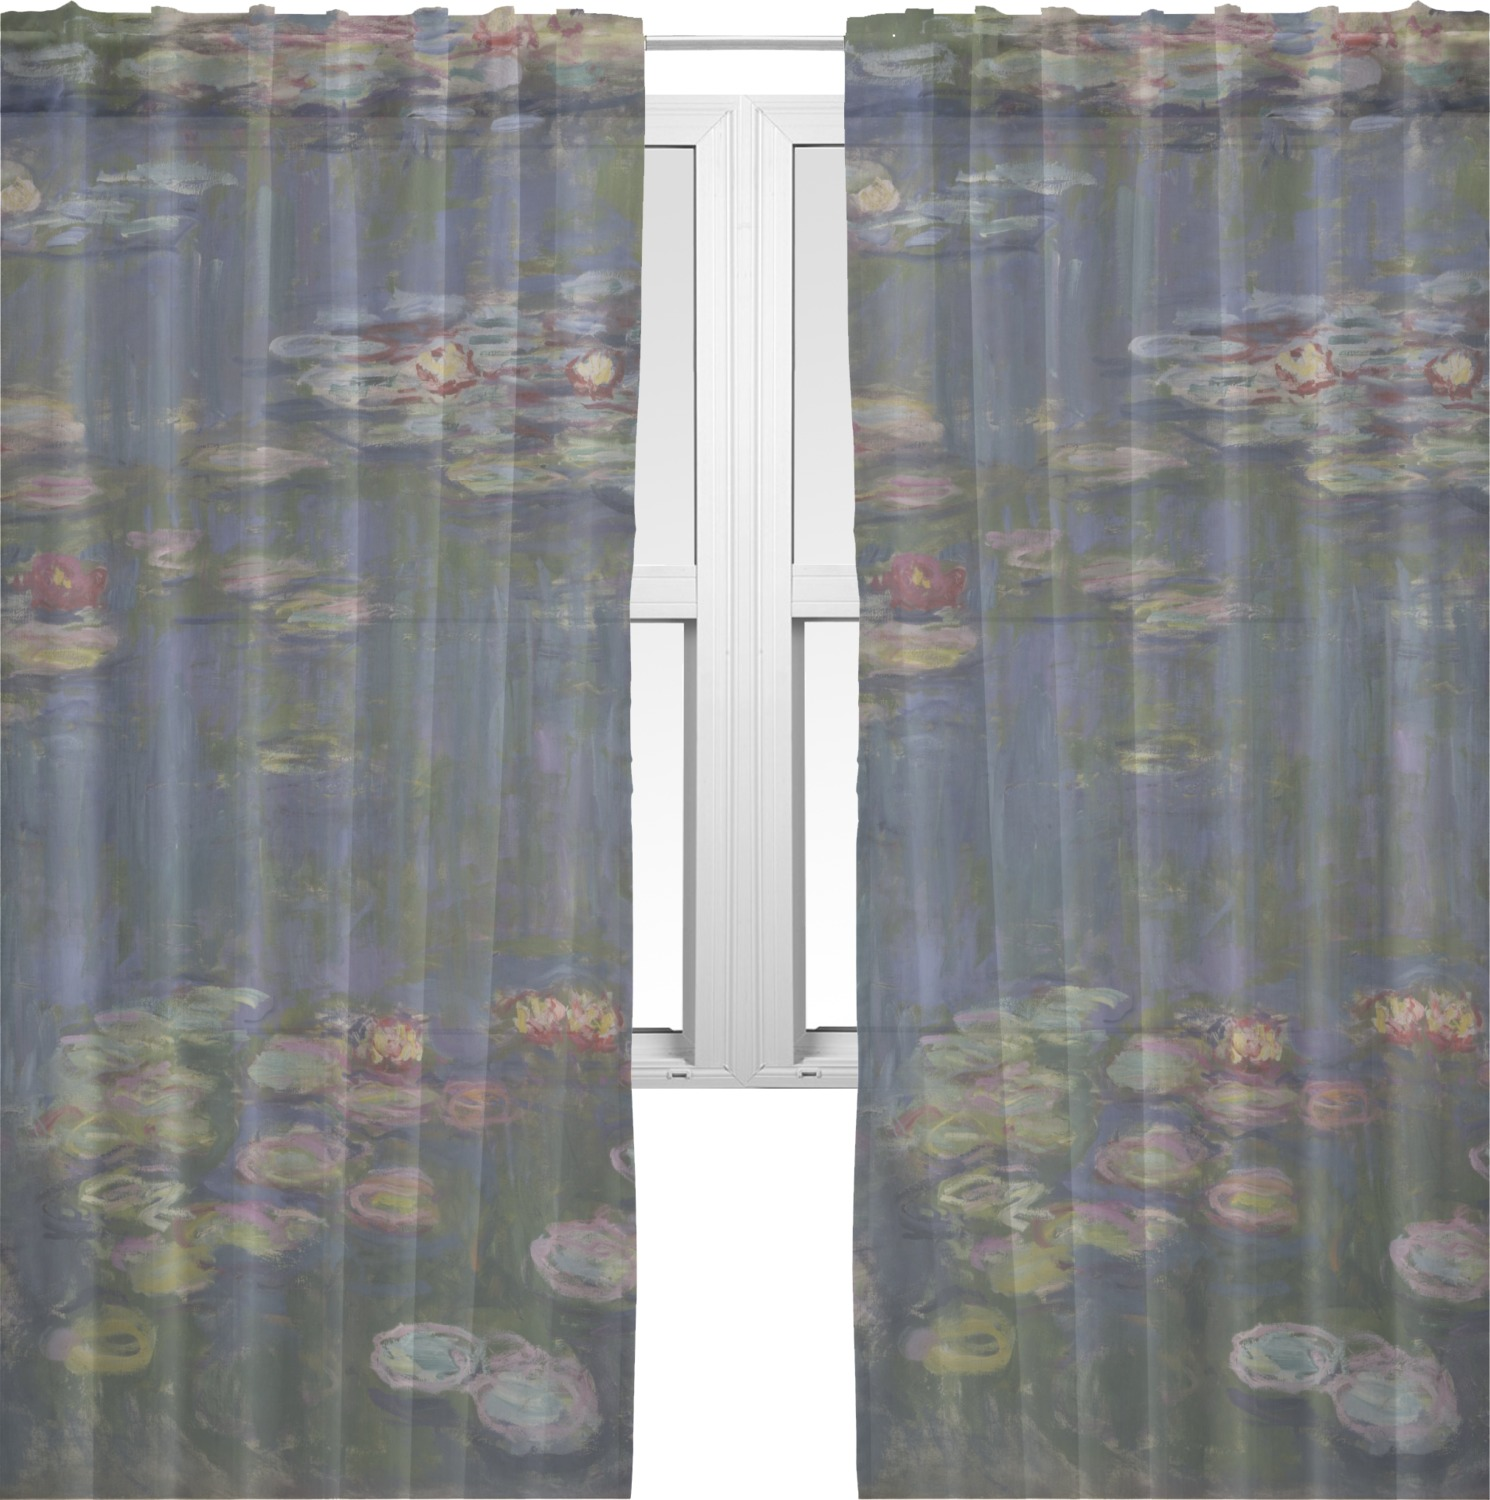 Water lilies by claude monet sheer sheer curtains 60 x60 for Painting sheer curtains